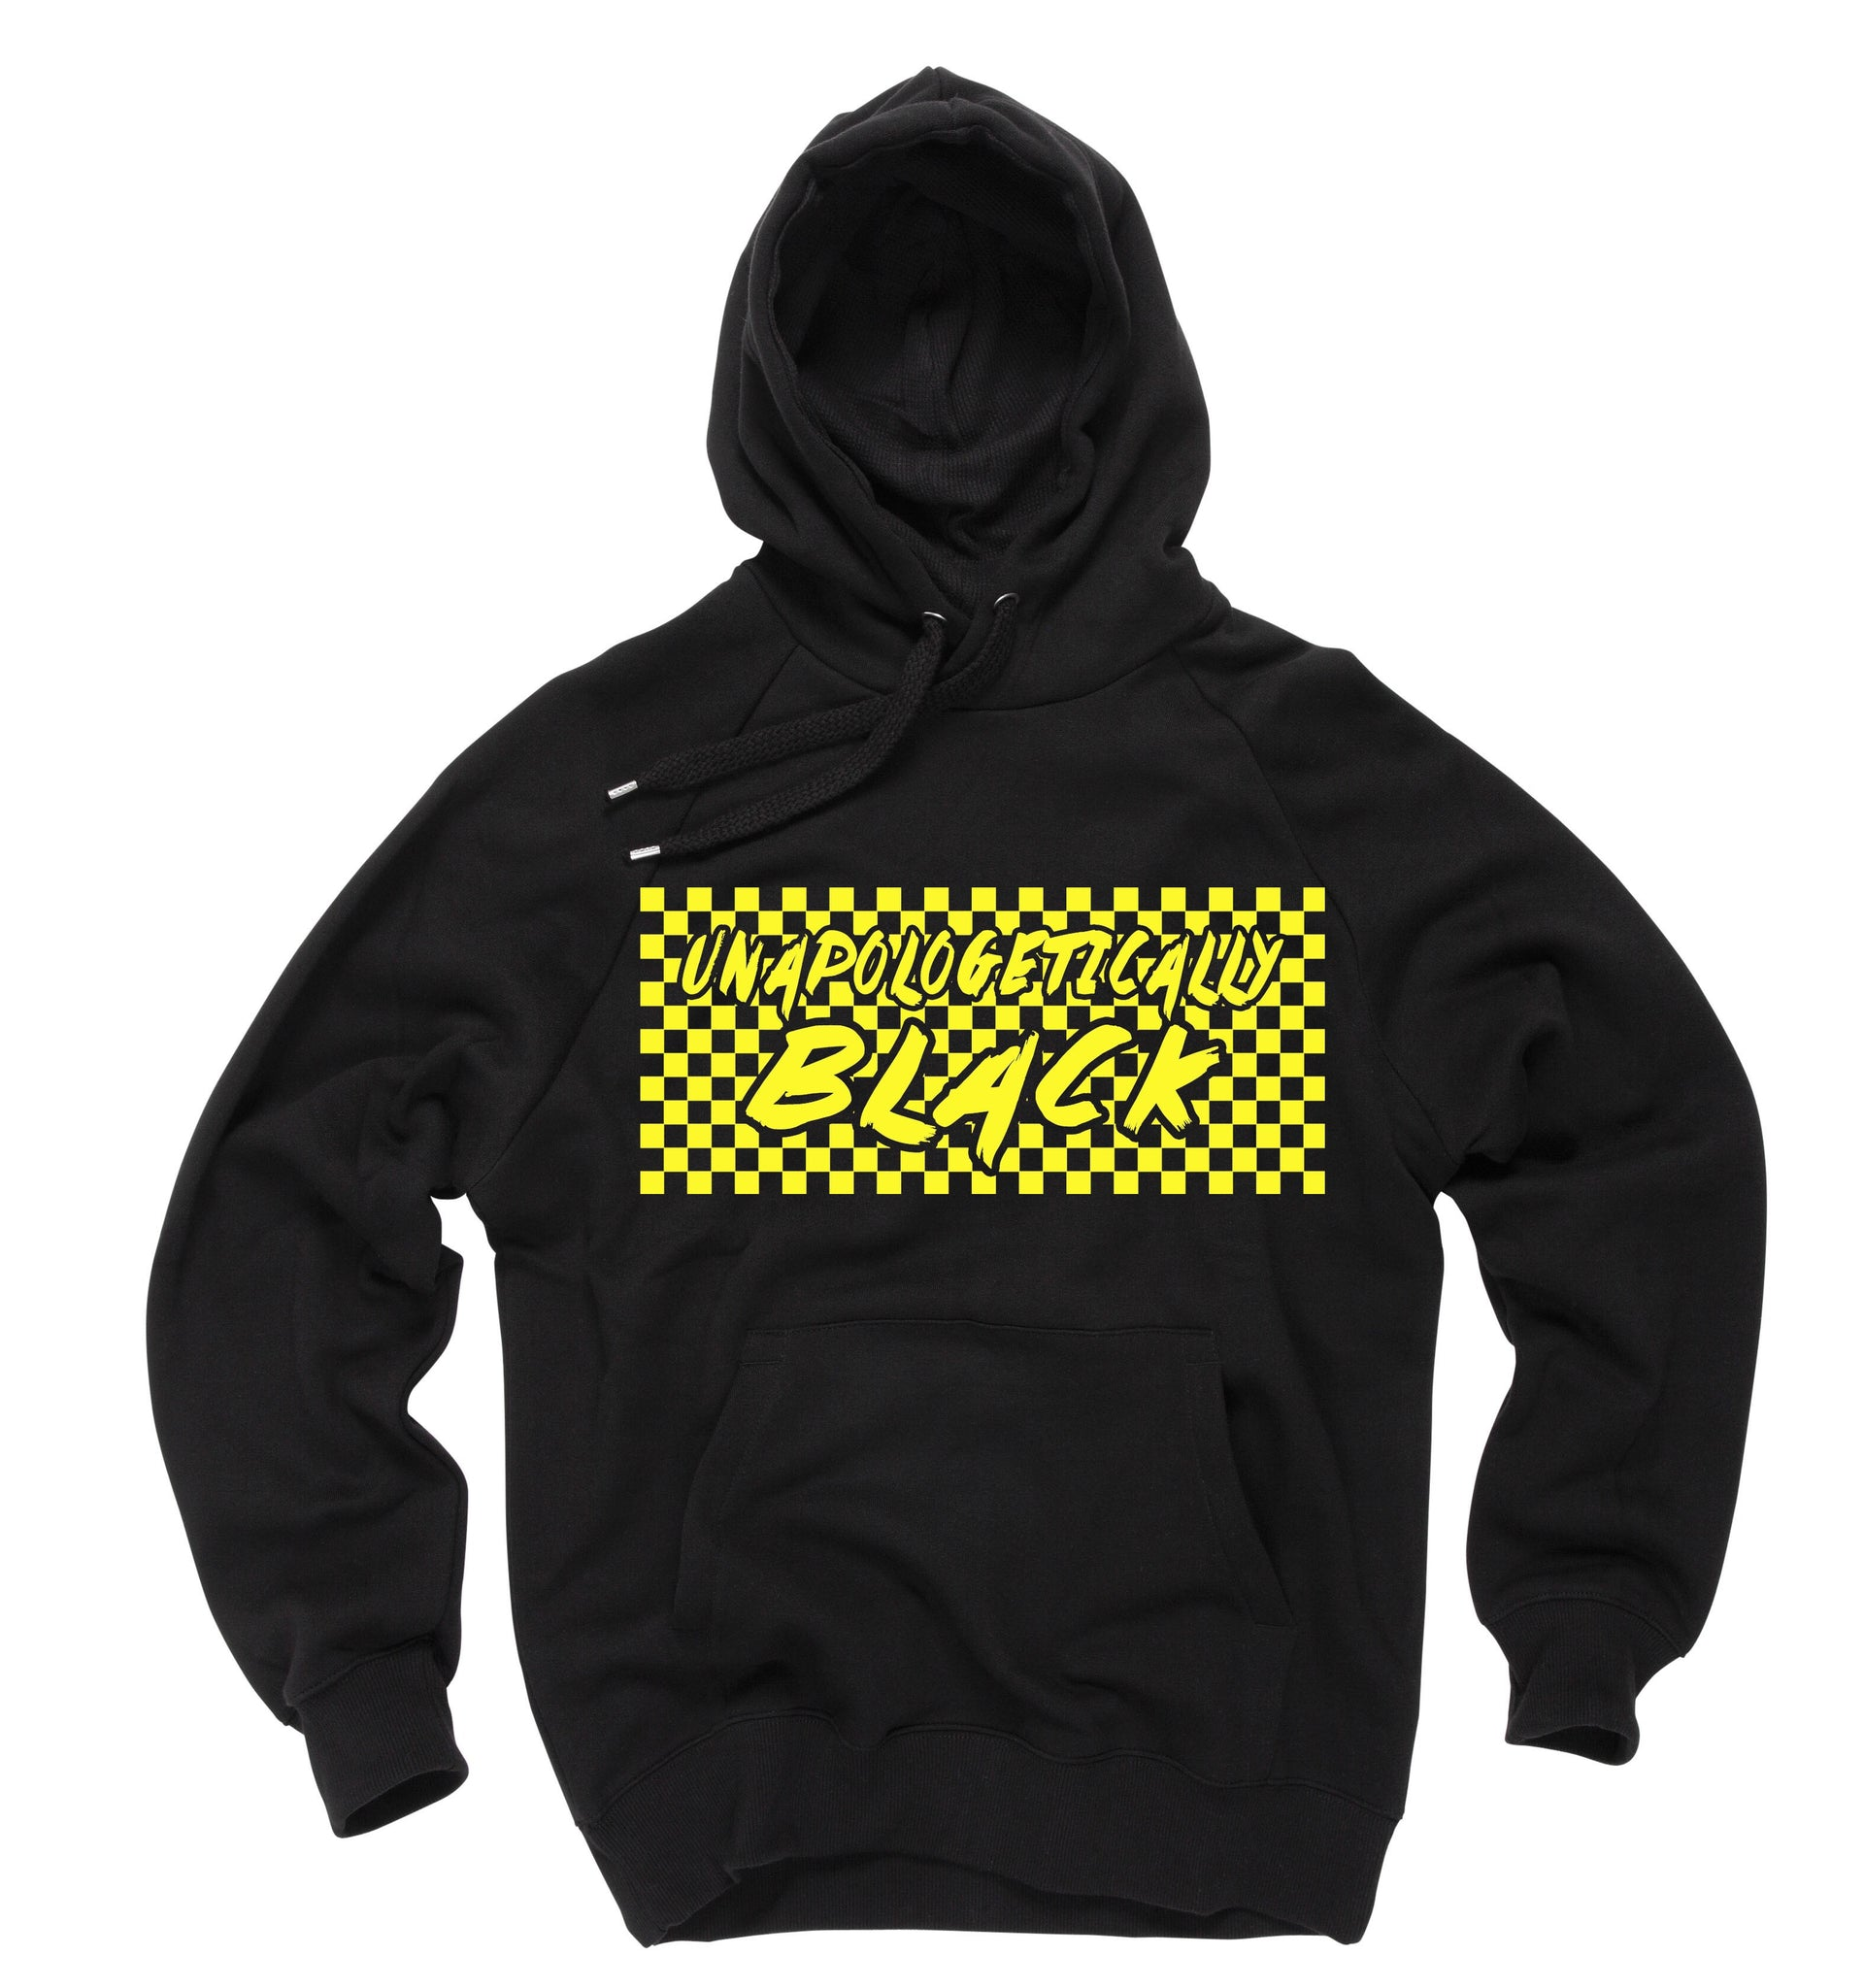 Checkered Unapologetically Black Hoodie